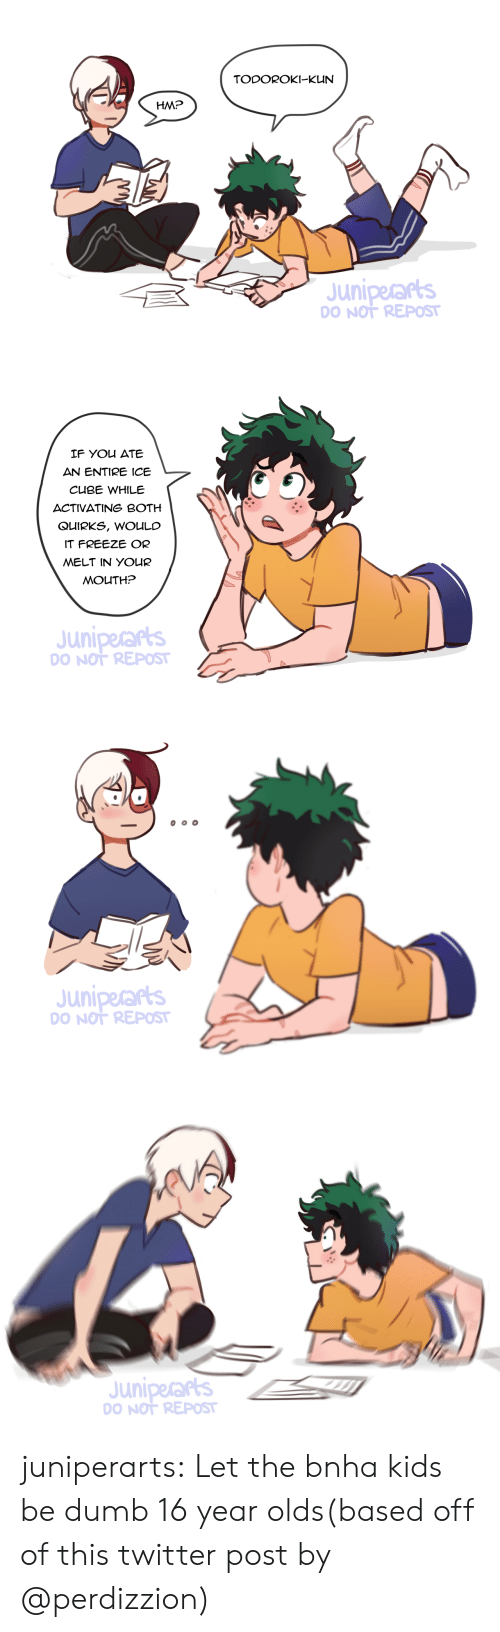 Repost If: TODOROKI-KUN  HM?  Juniperars  O NOT REPOST   IF You ATE  AN ENTIRE ICE  CUBE WHILE  ACTIVATING BOTH  QUIRKS, WOULC  IT FREEZE OR  MELT IN YOUR  MOUTH?  Juniperarts  O NOT REPOST   Juniperars  O NOT REPOST   Juniperars  O NOT REPOST juniperarts:  Let the bnha kids be dumb 16 year olds(based off of this twitter post by @perdizzion)